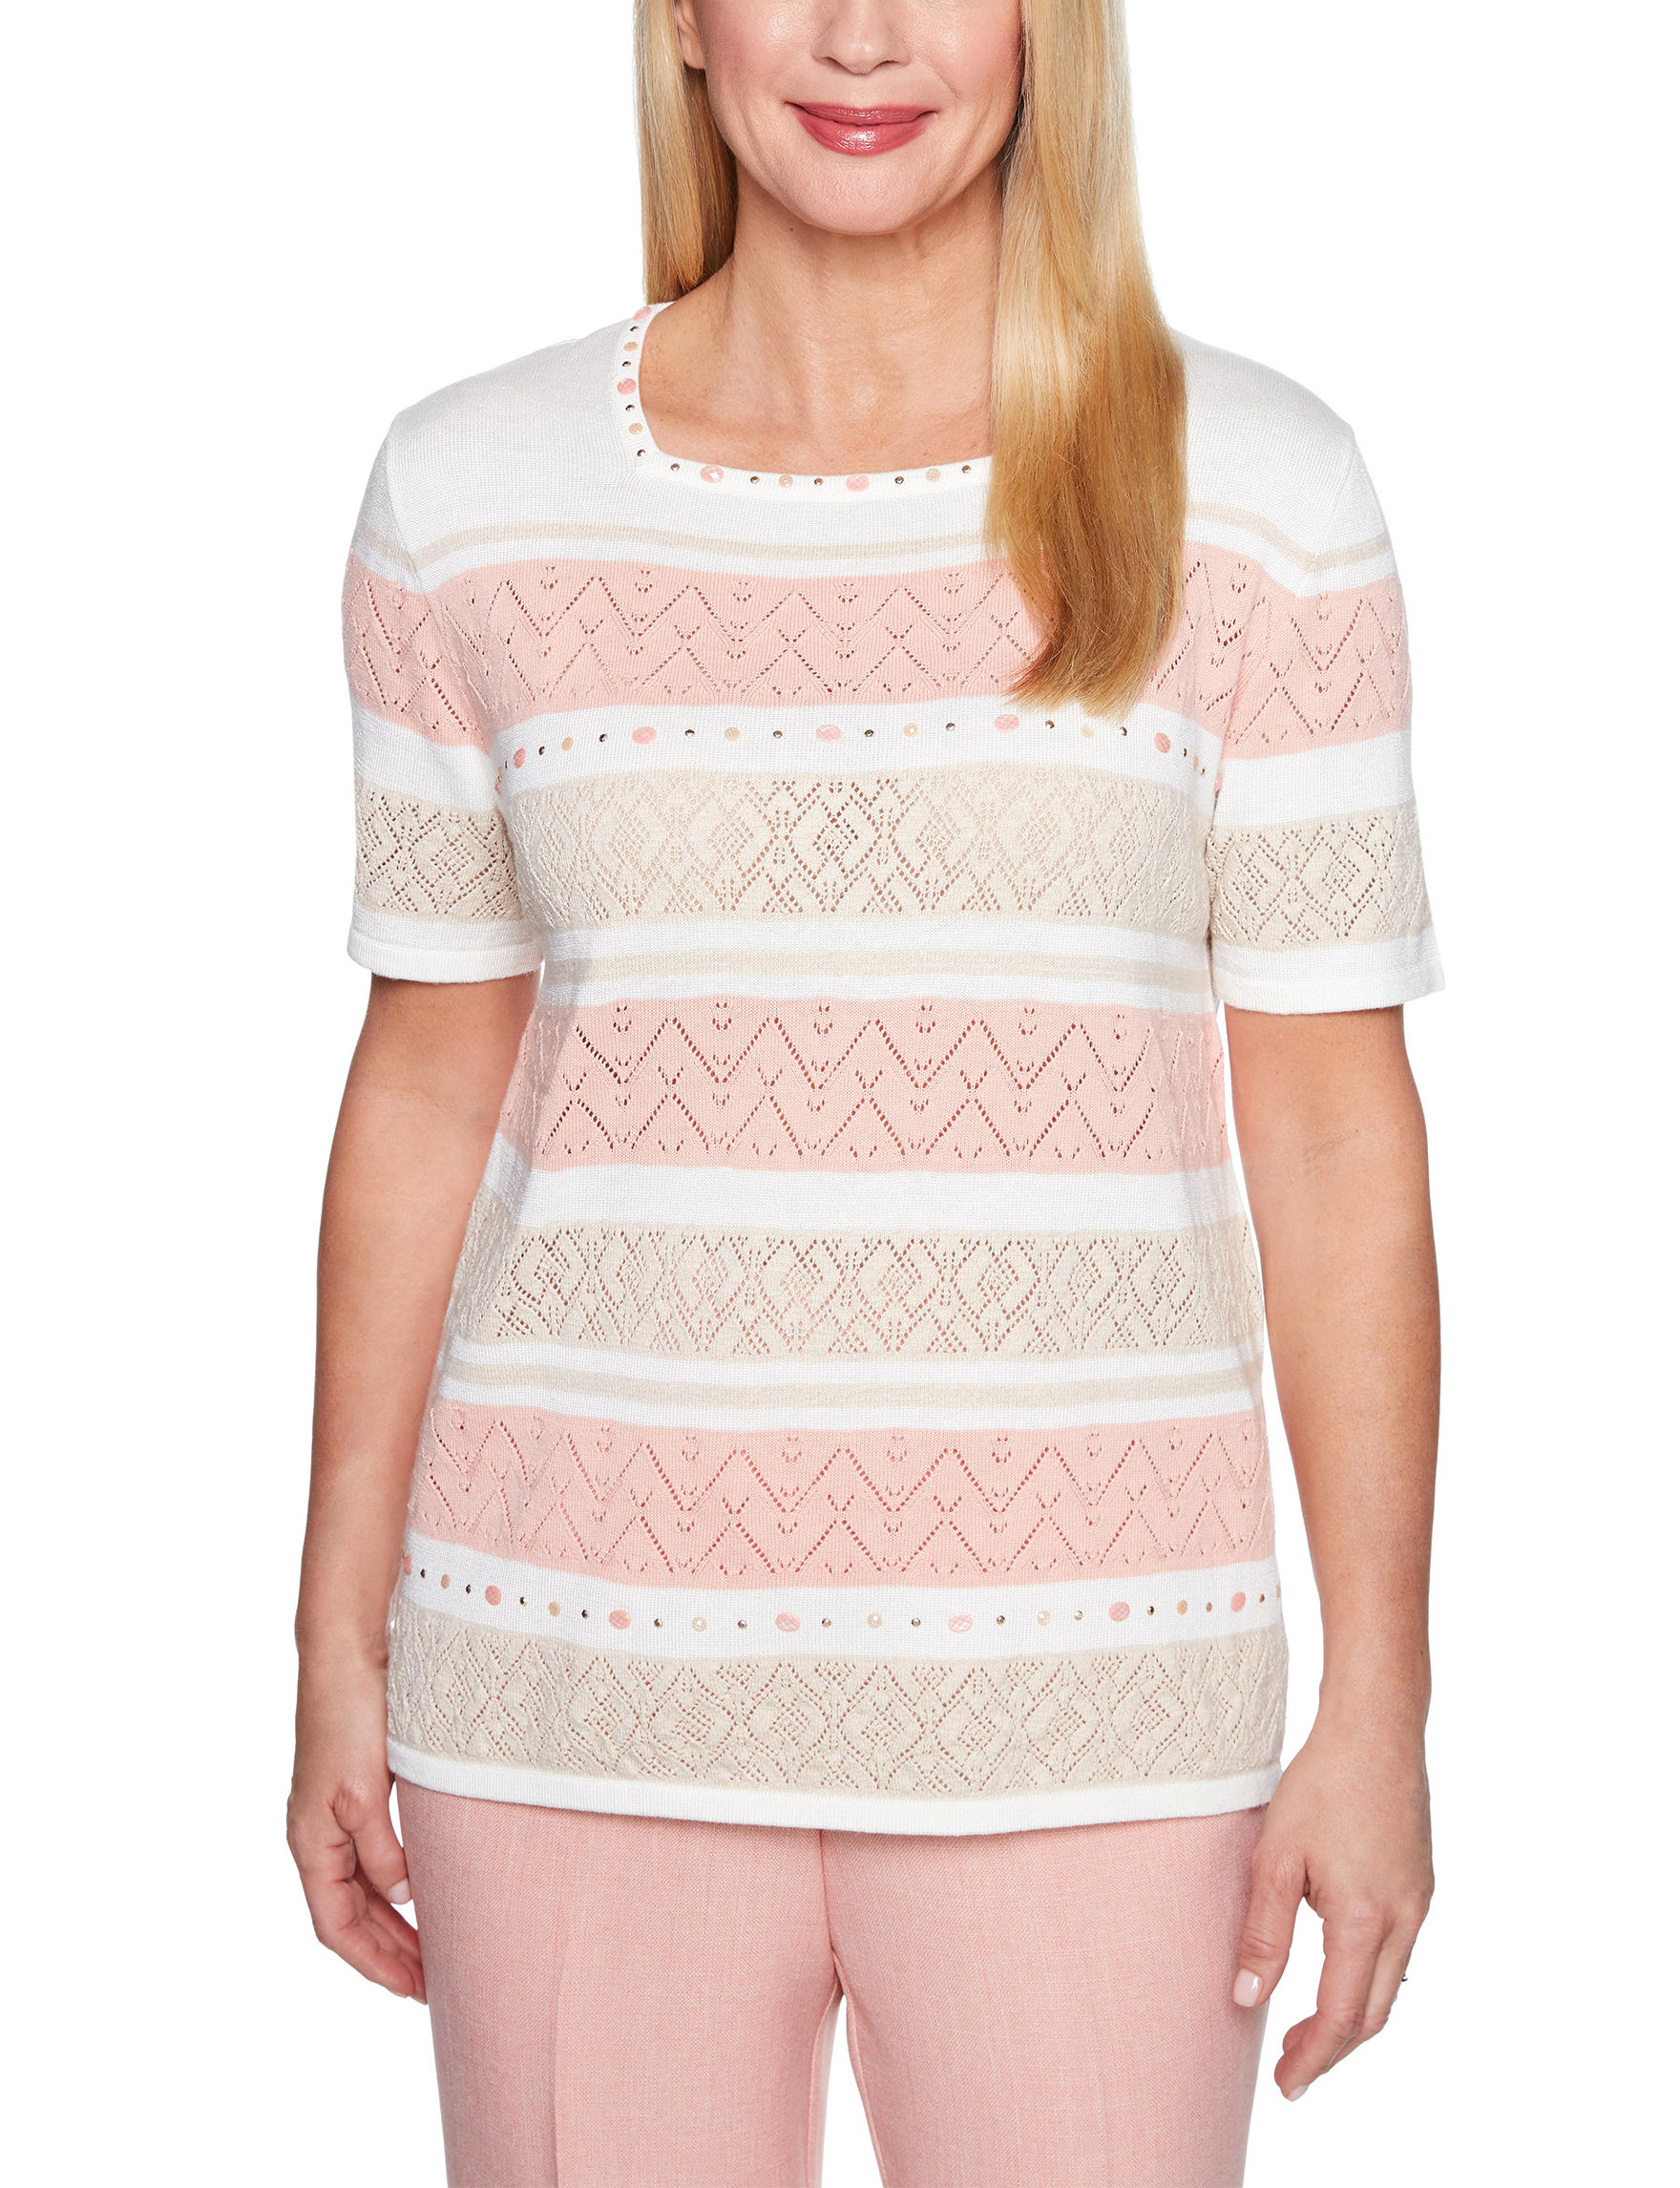 Alfred Dunner White/Pink/Beige